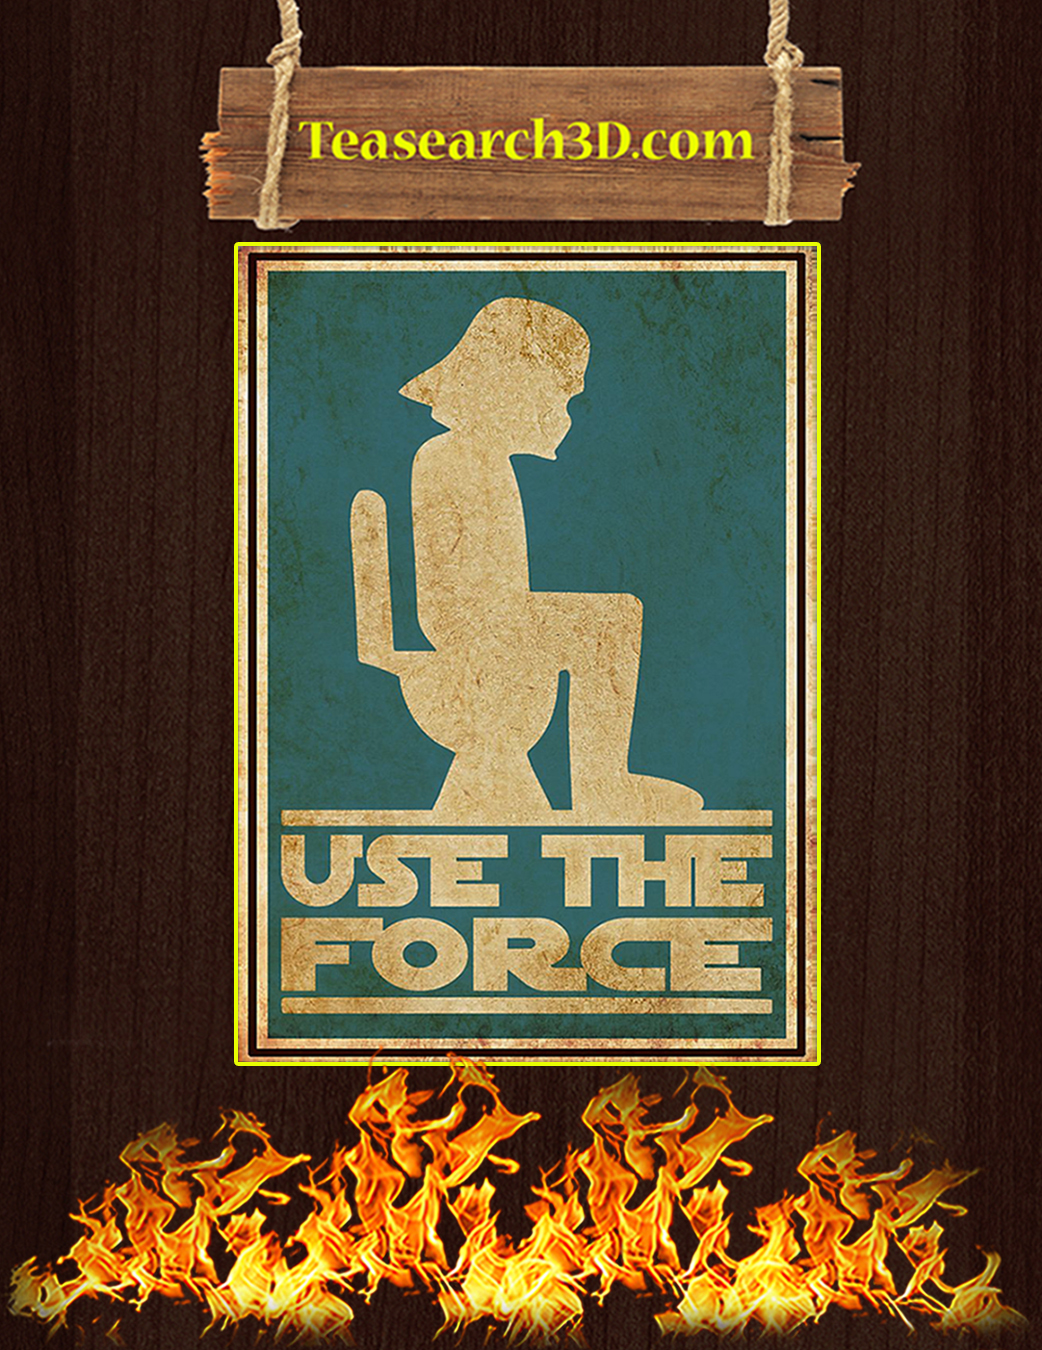 Use the force star wars poster A1